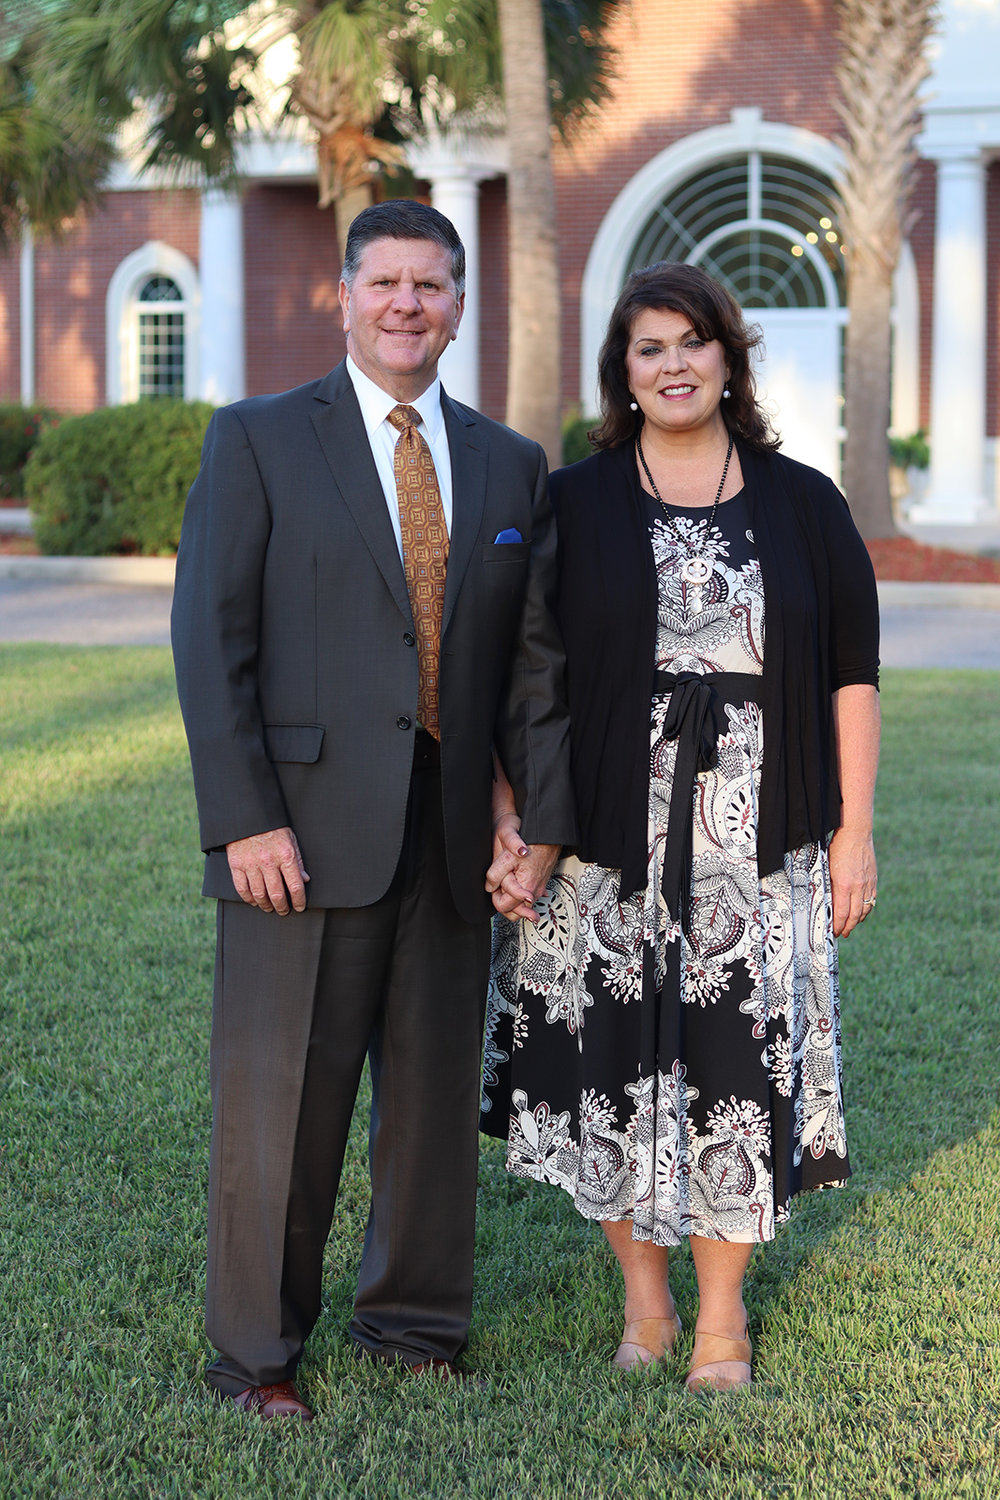 Pastor Eric Tharp and his wife, JoAnne